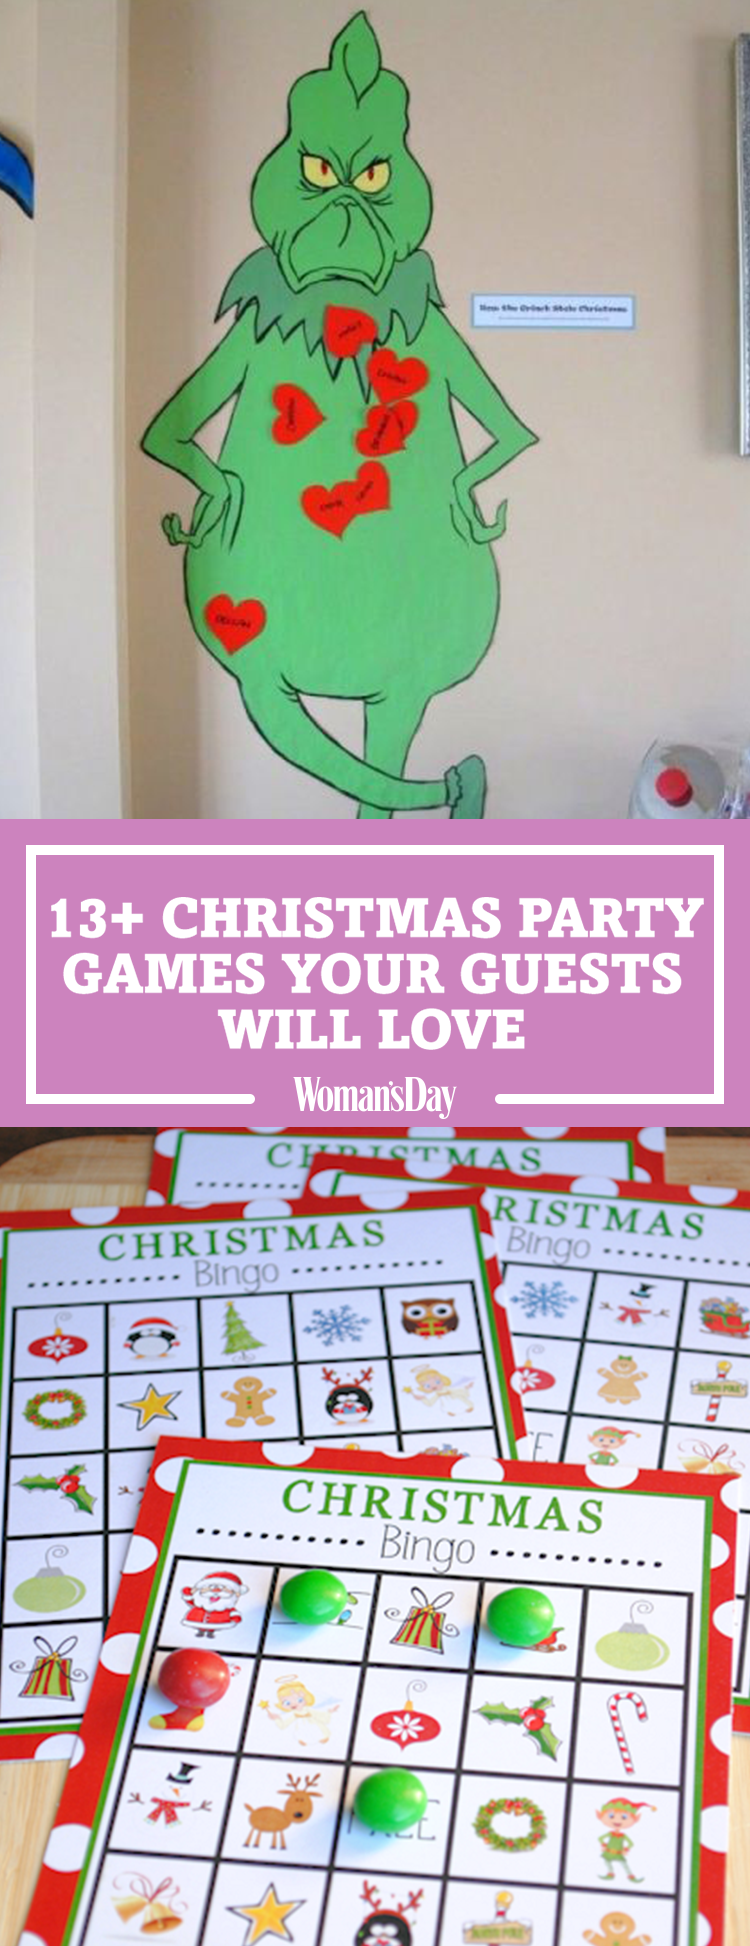 24 Fun Christmas Party Games for Kids - DIY Holiday Party